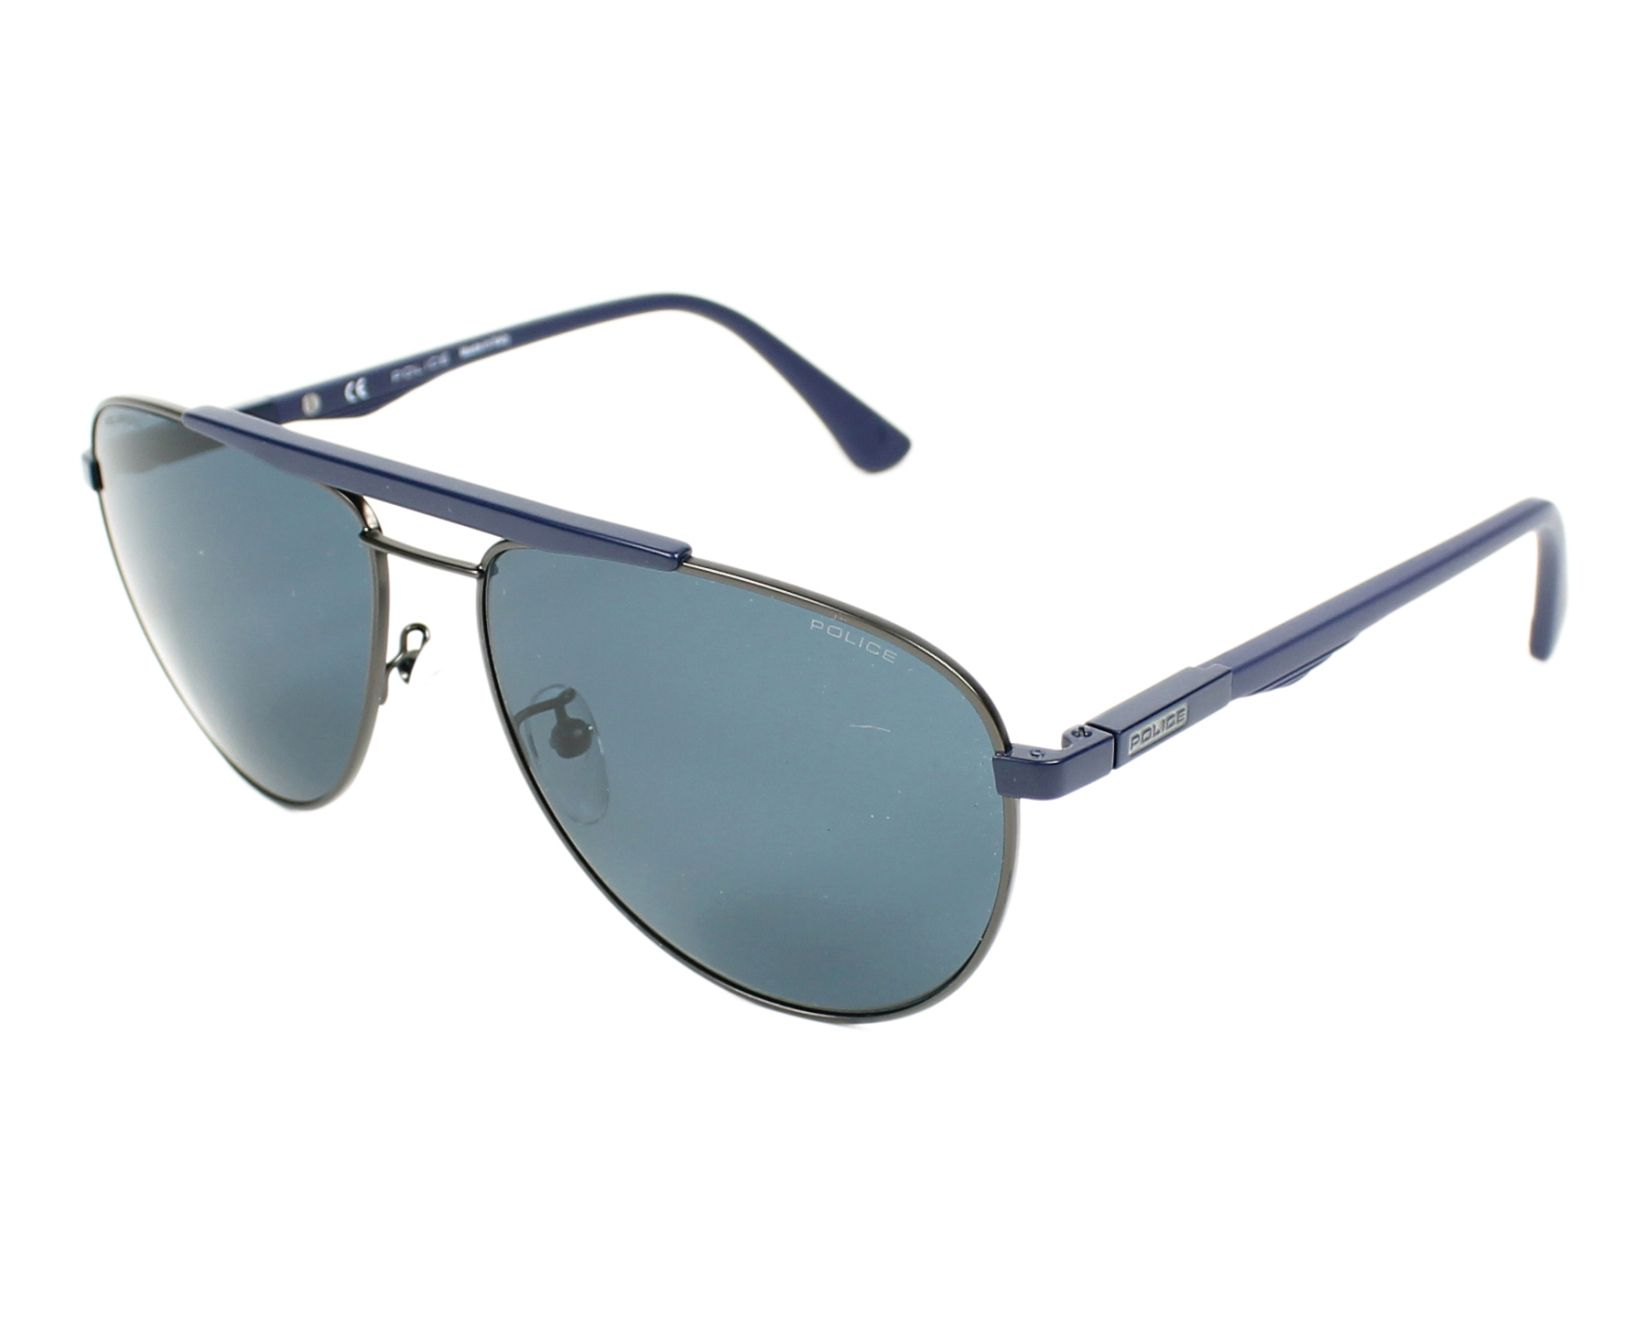 Police Sunglasses Blue With Grey Lenses Spl 364 Snfp Visionet Us